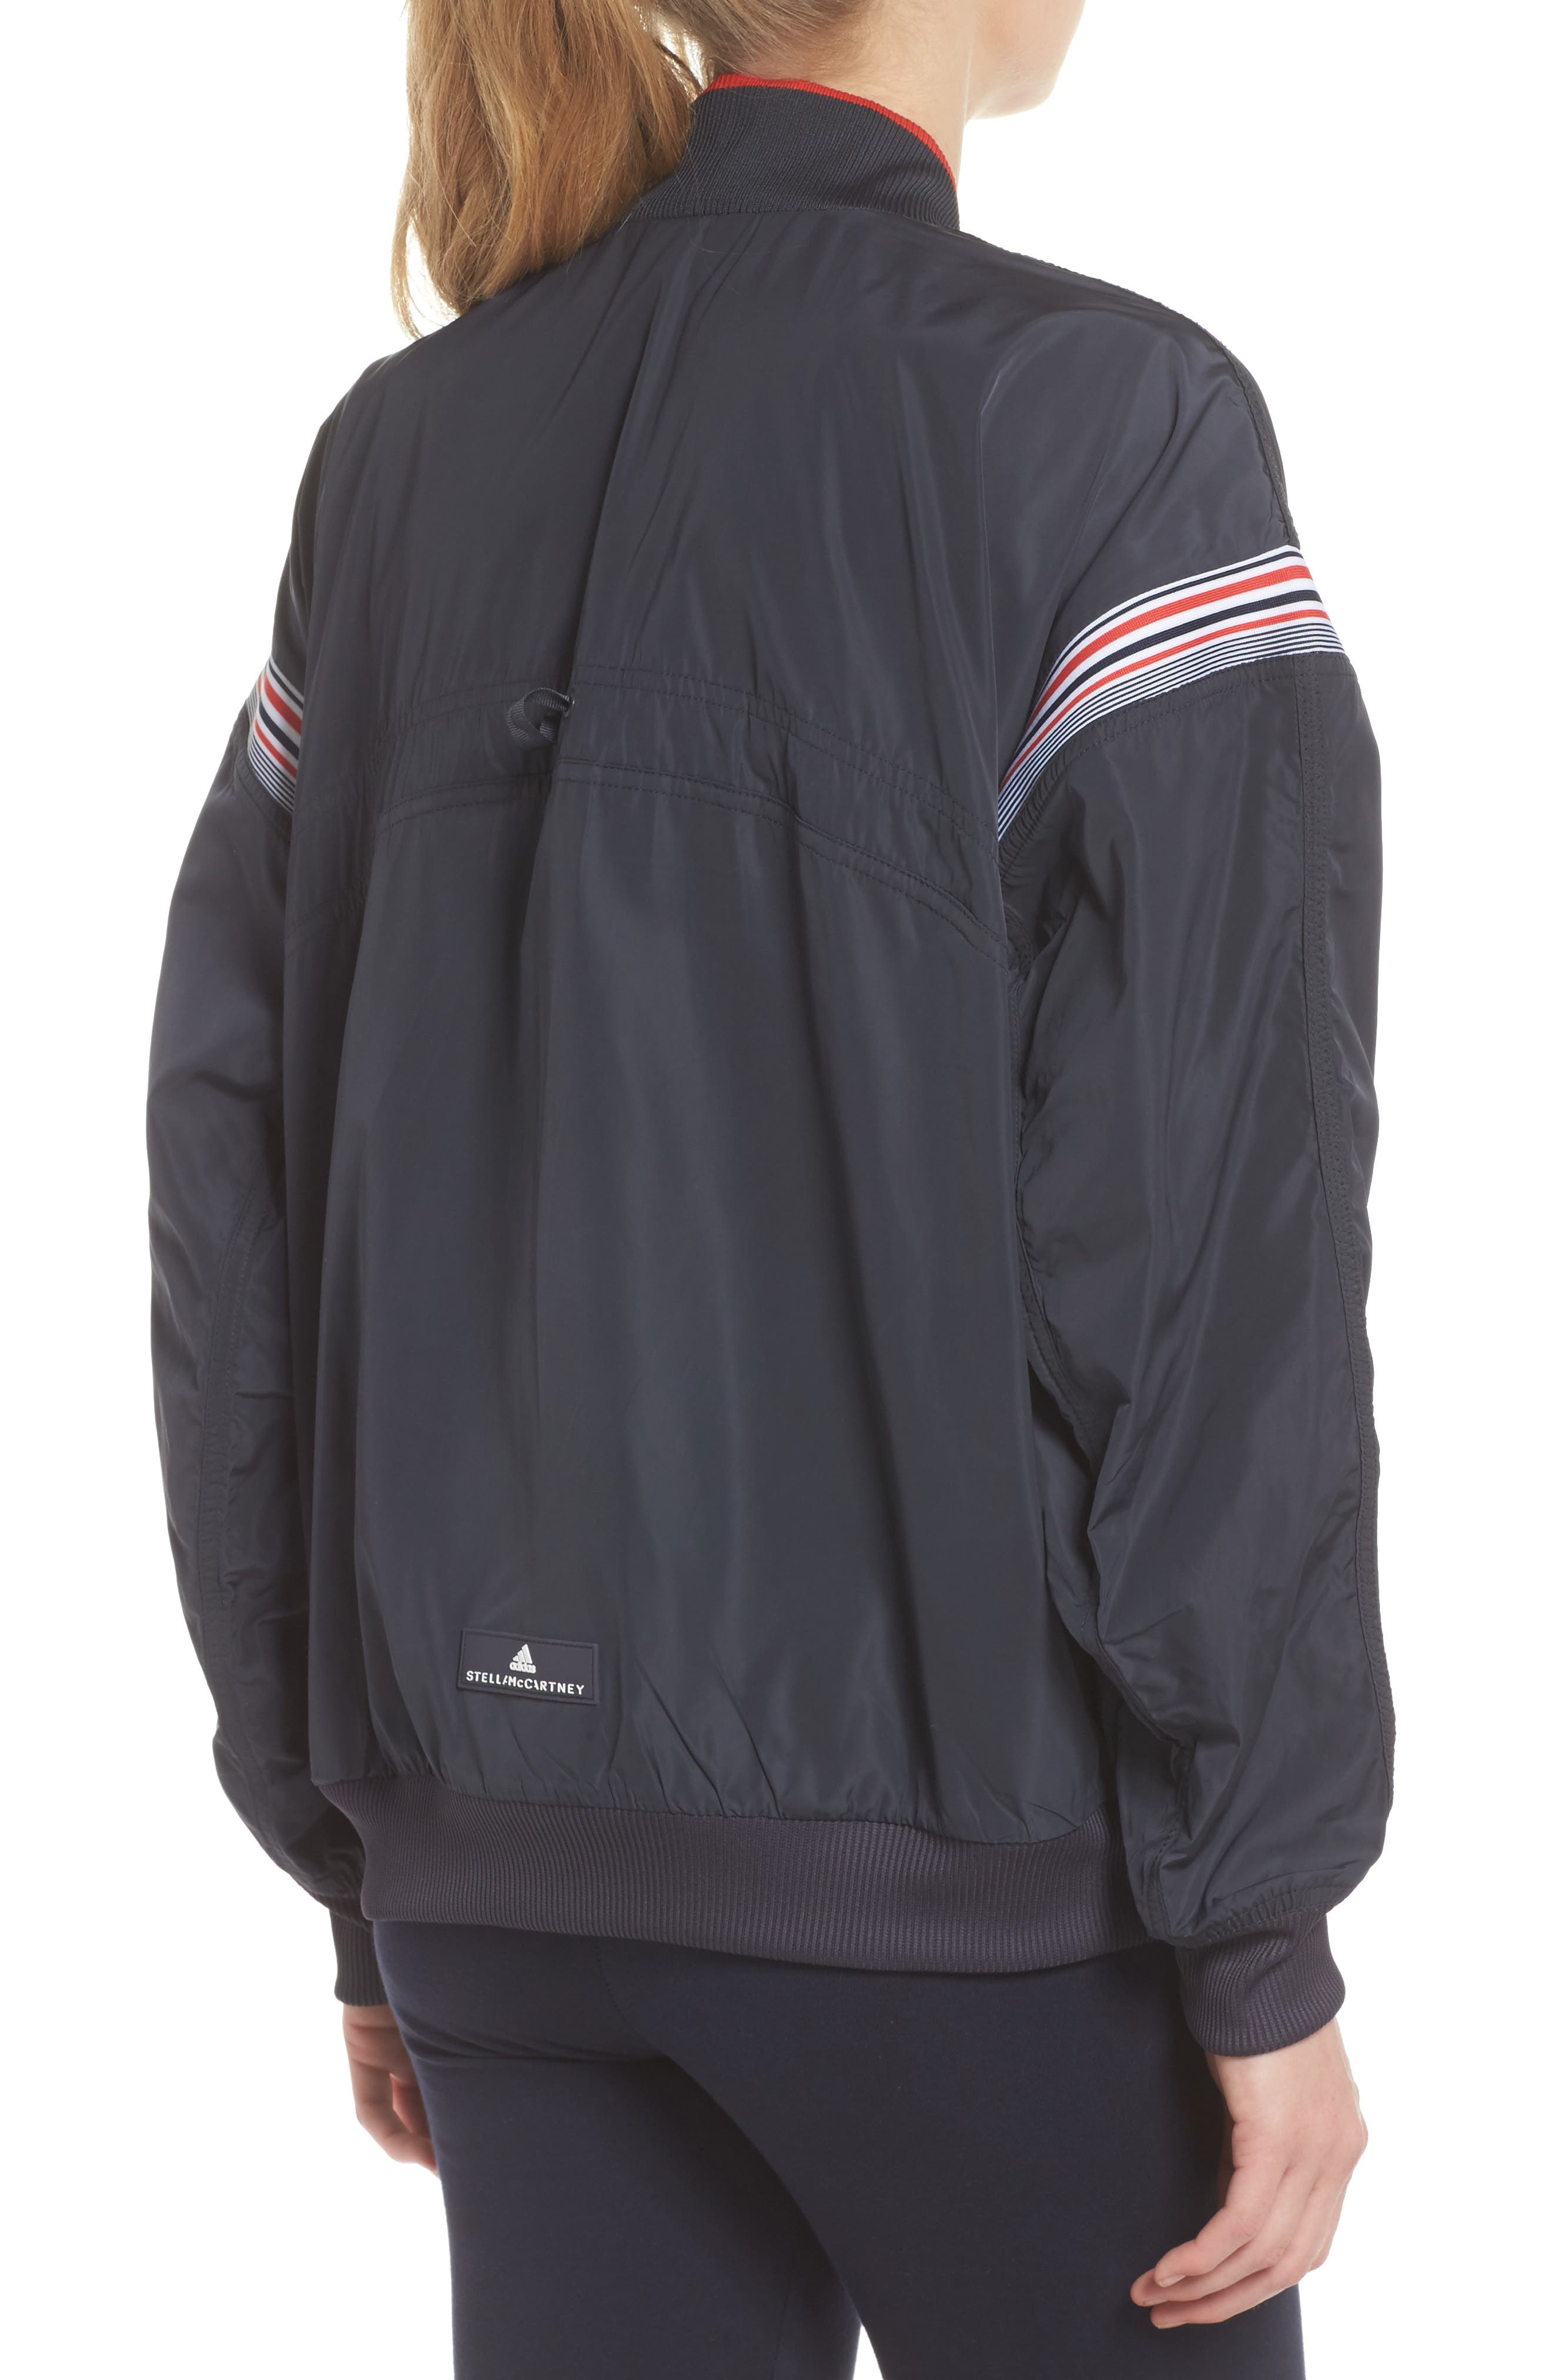 Track Jacket,                             Alternate thumbnail 2, color,                             Night Grey